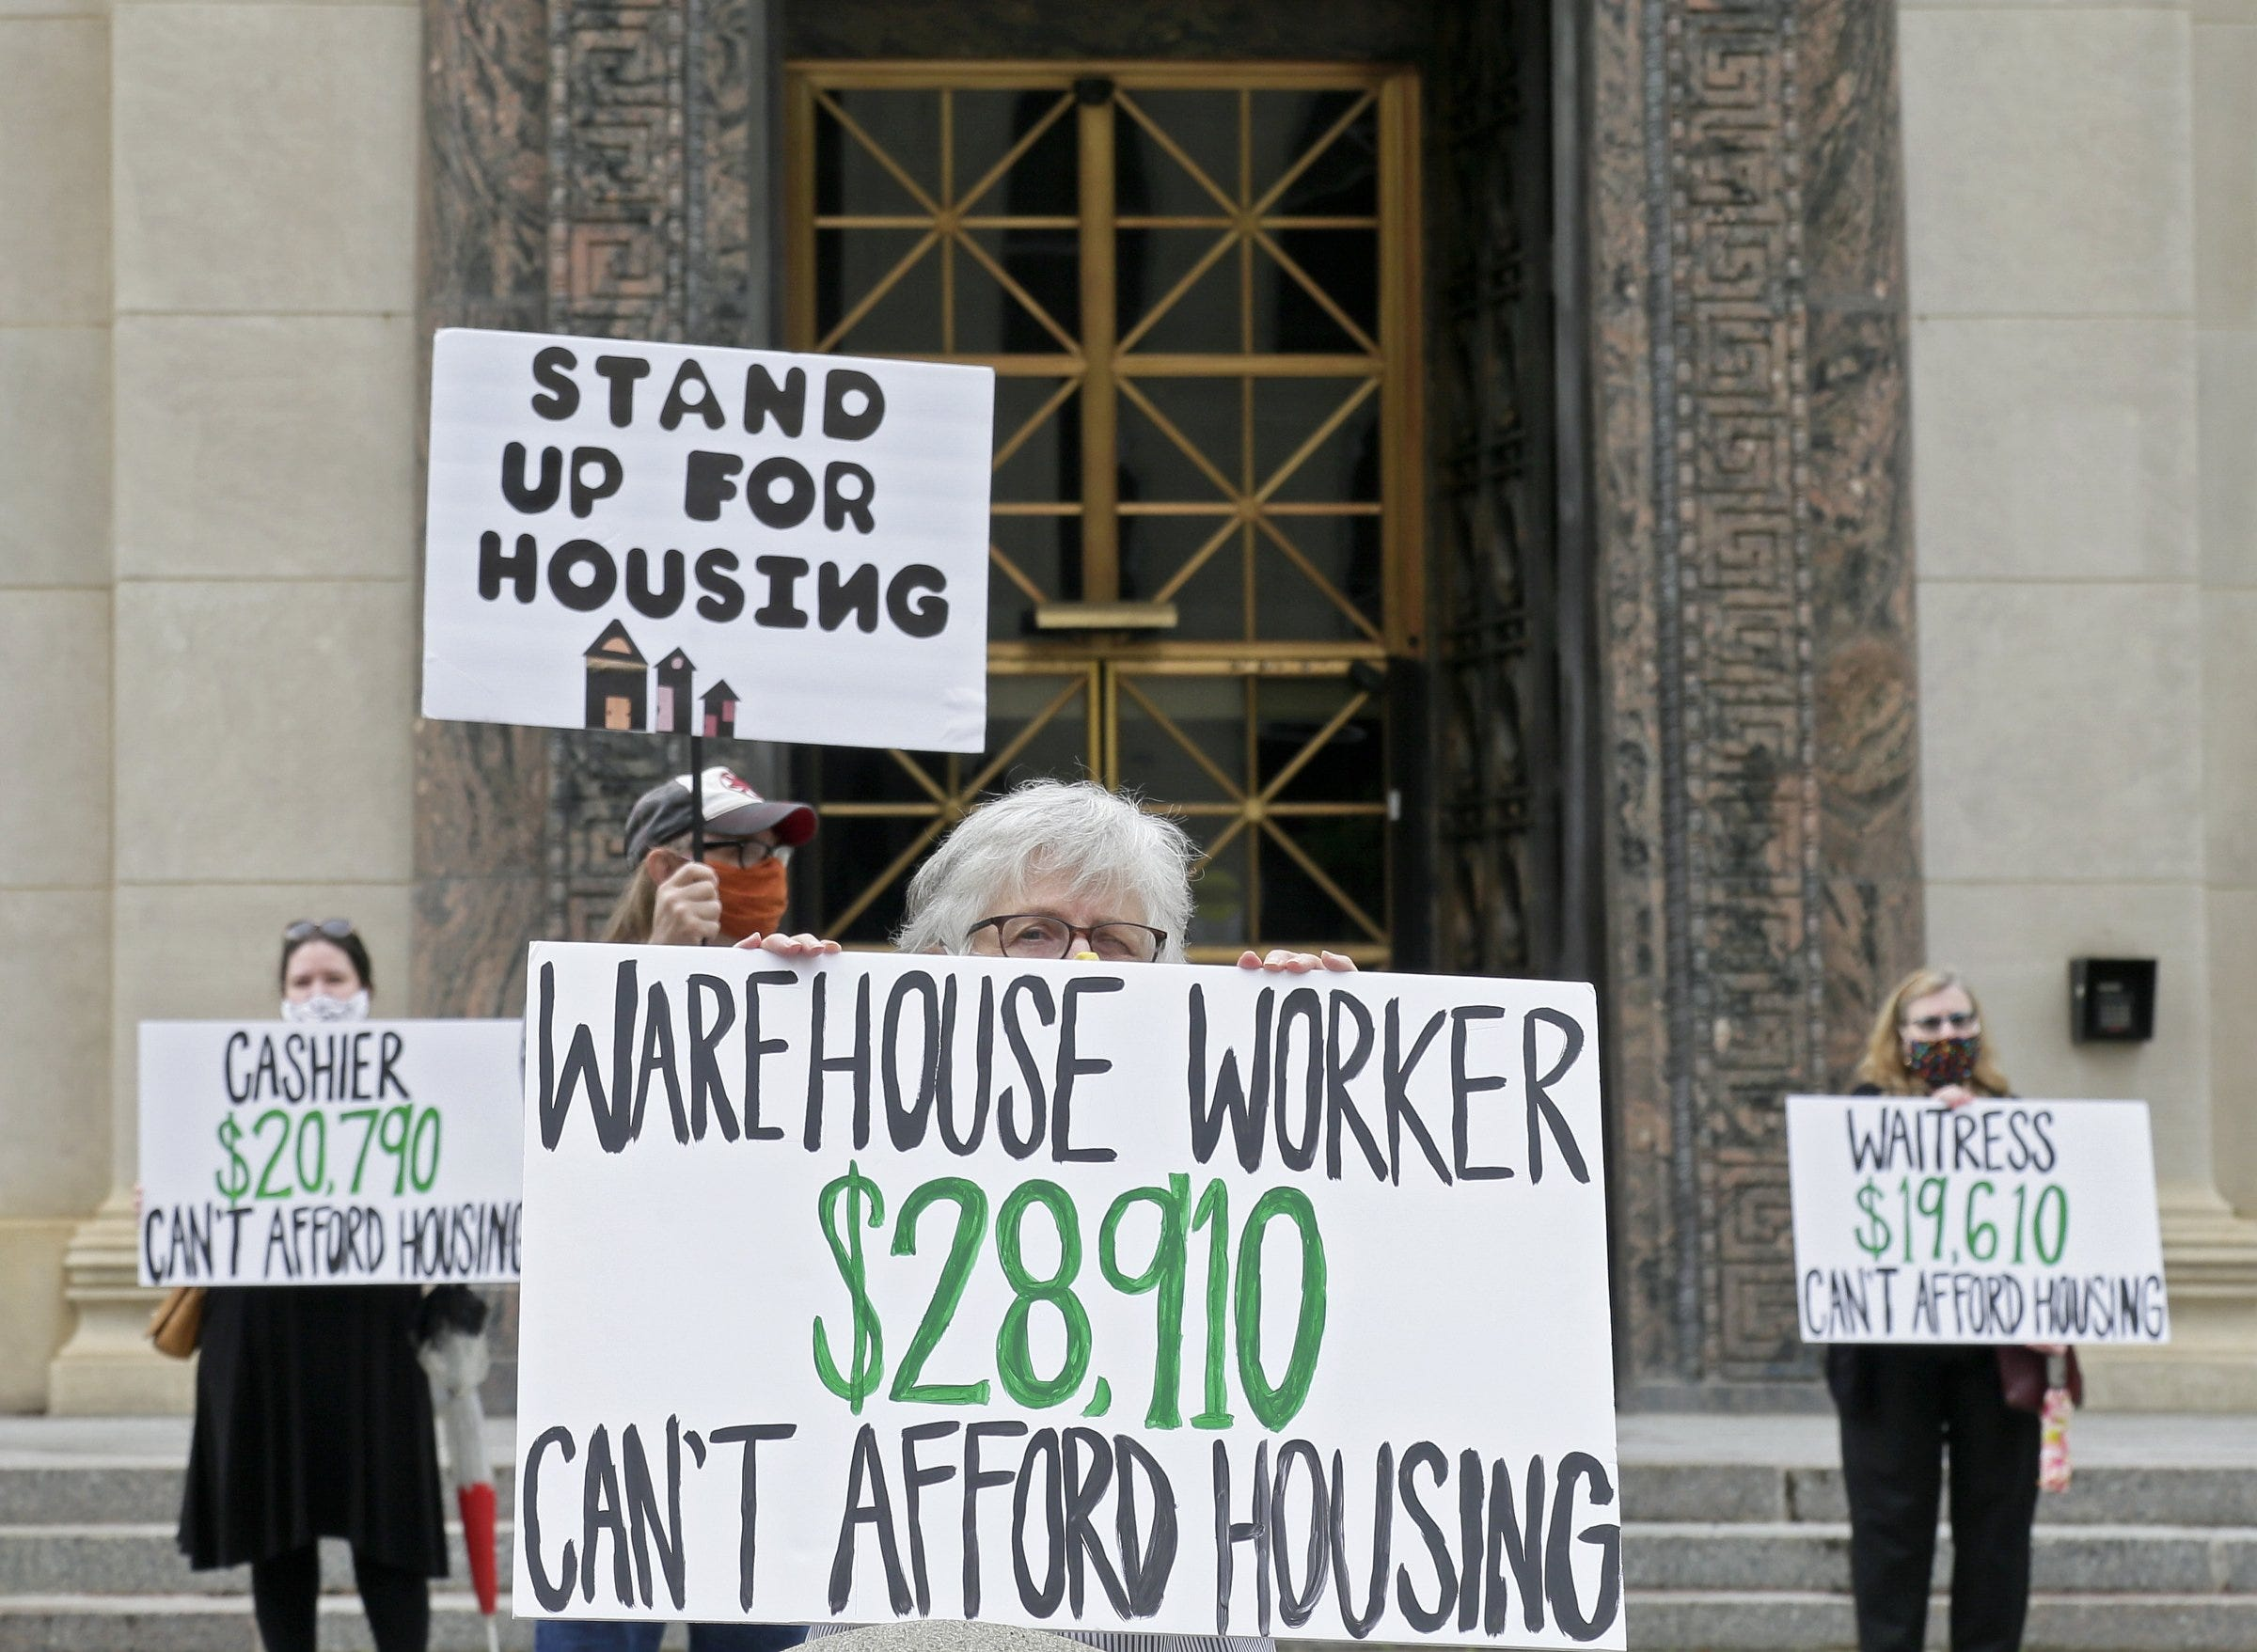 Advocates for low-wage workers demonstrated at City Hall in downtown Columbus on Thursday, May 28, 2020, calling for more affordable housing and assistance for those facing eviction due to the coronavirus pandemic. [Barbara J. Perenic/Dispatch] ORG XMIT: 159890 (Via OlyDrop)